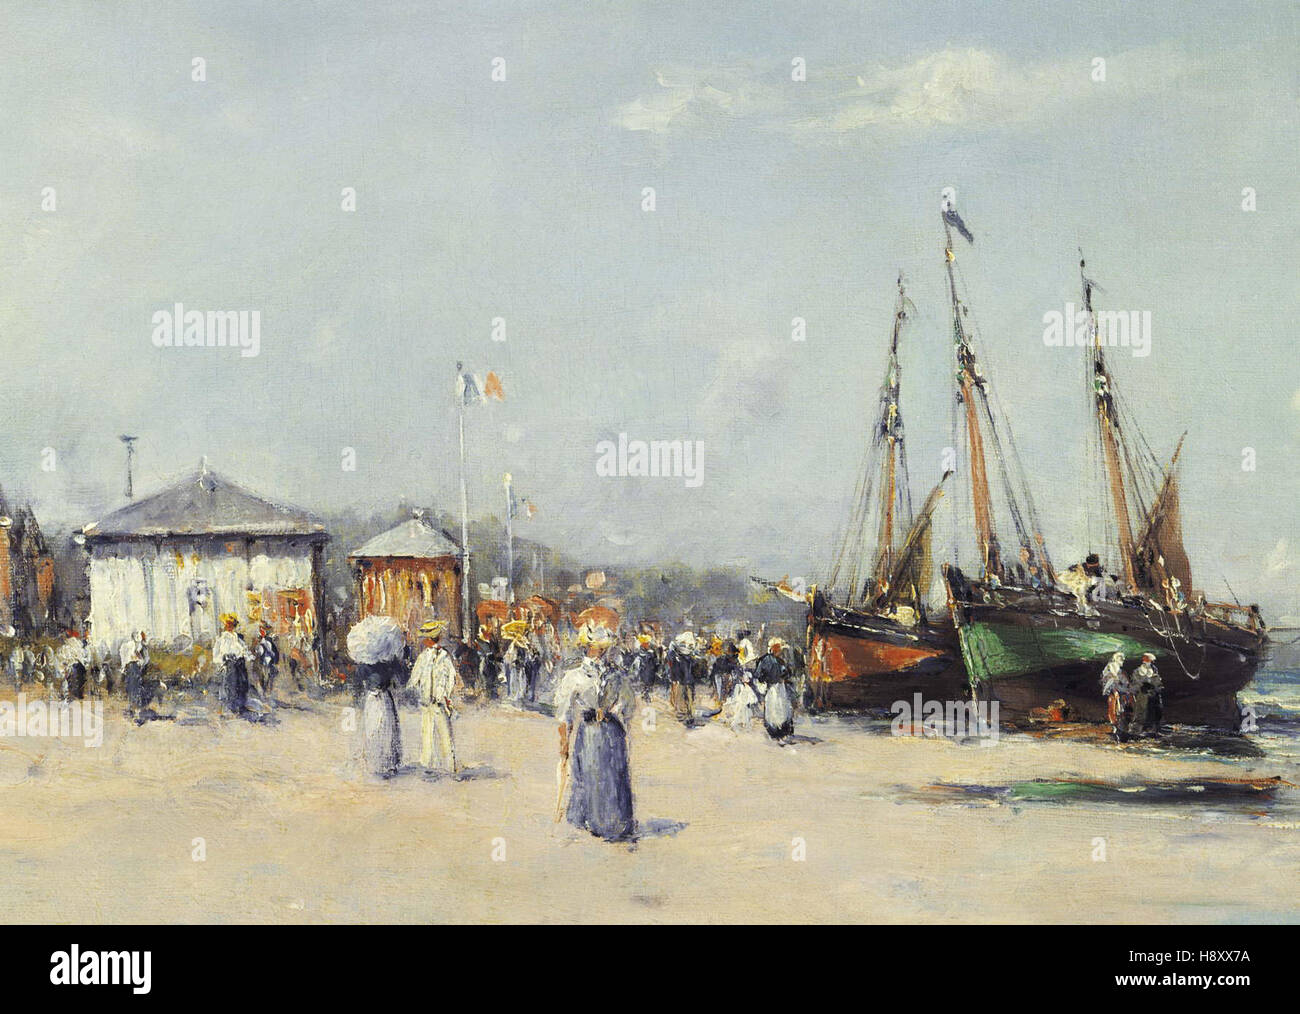 Charles Malfroy  The Beach at Deauville - Stock Image